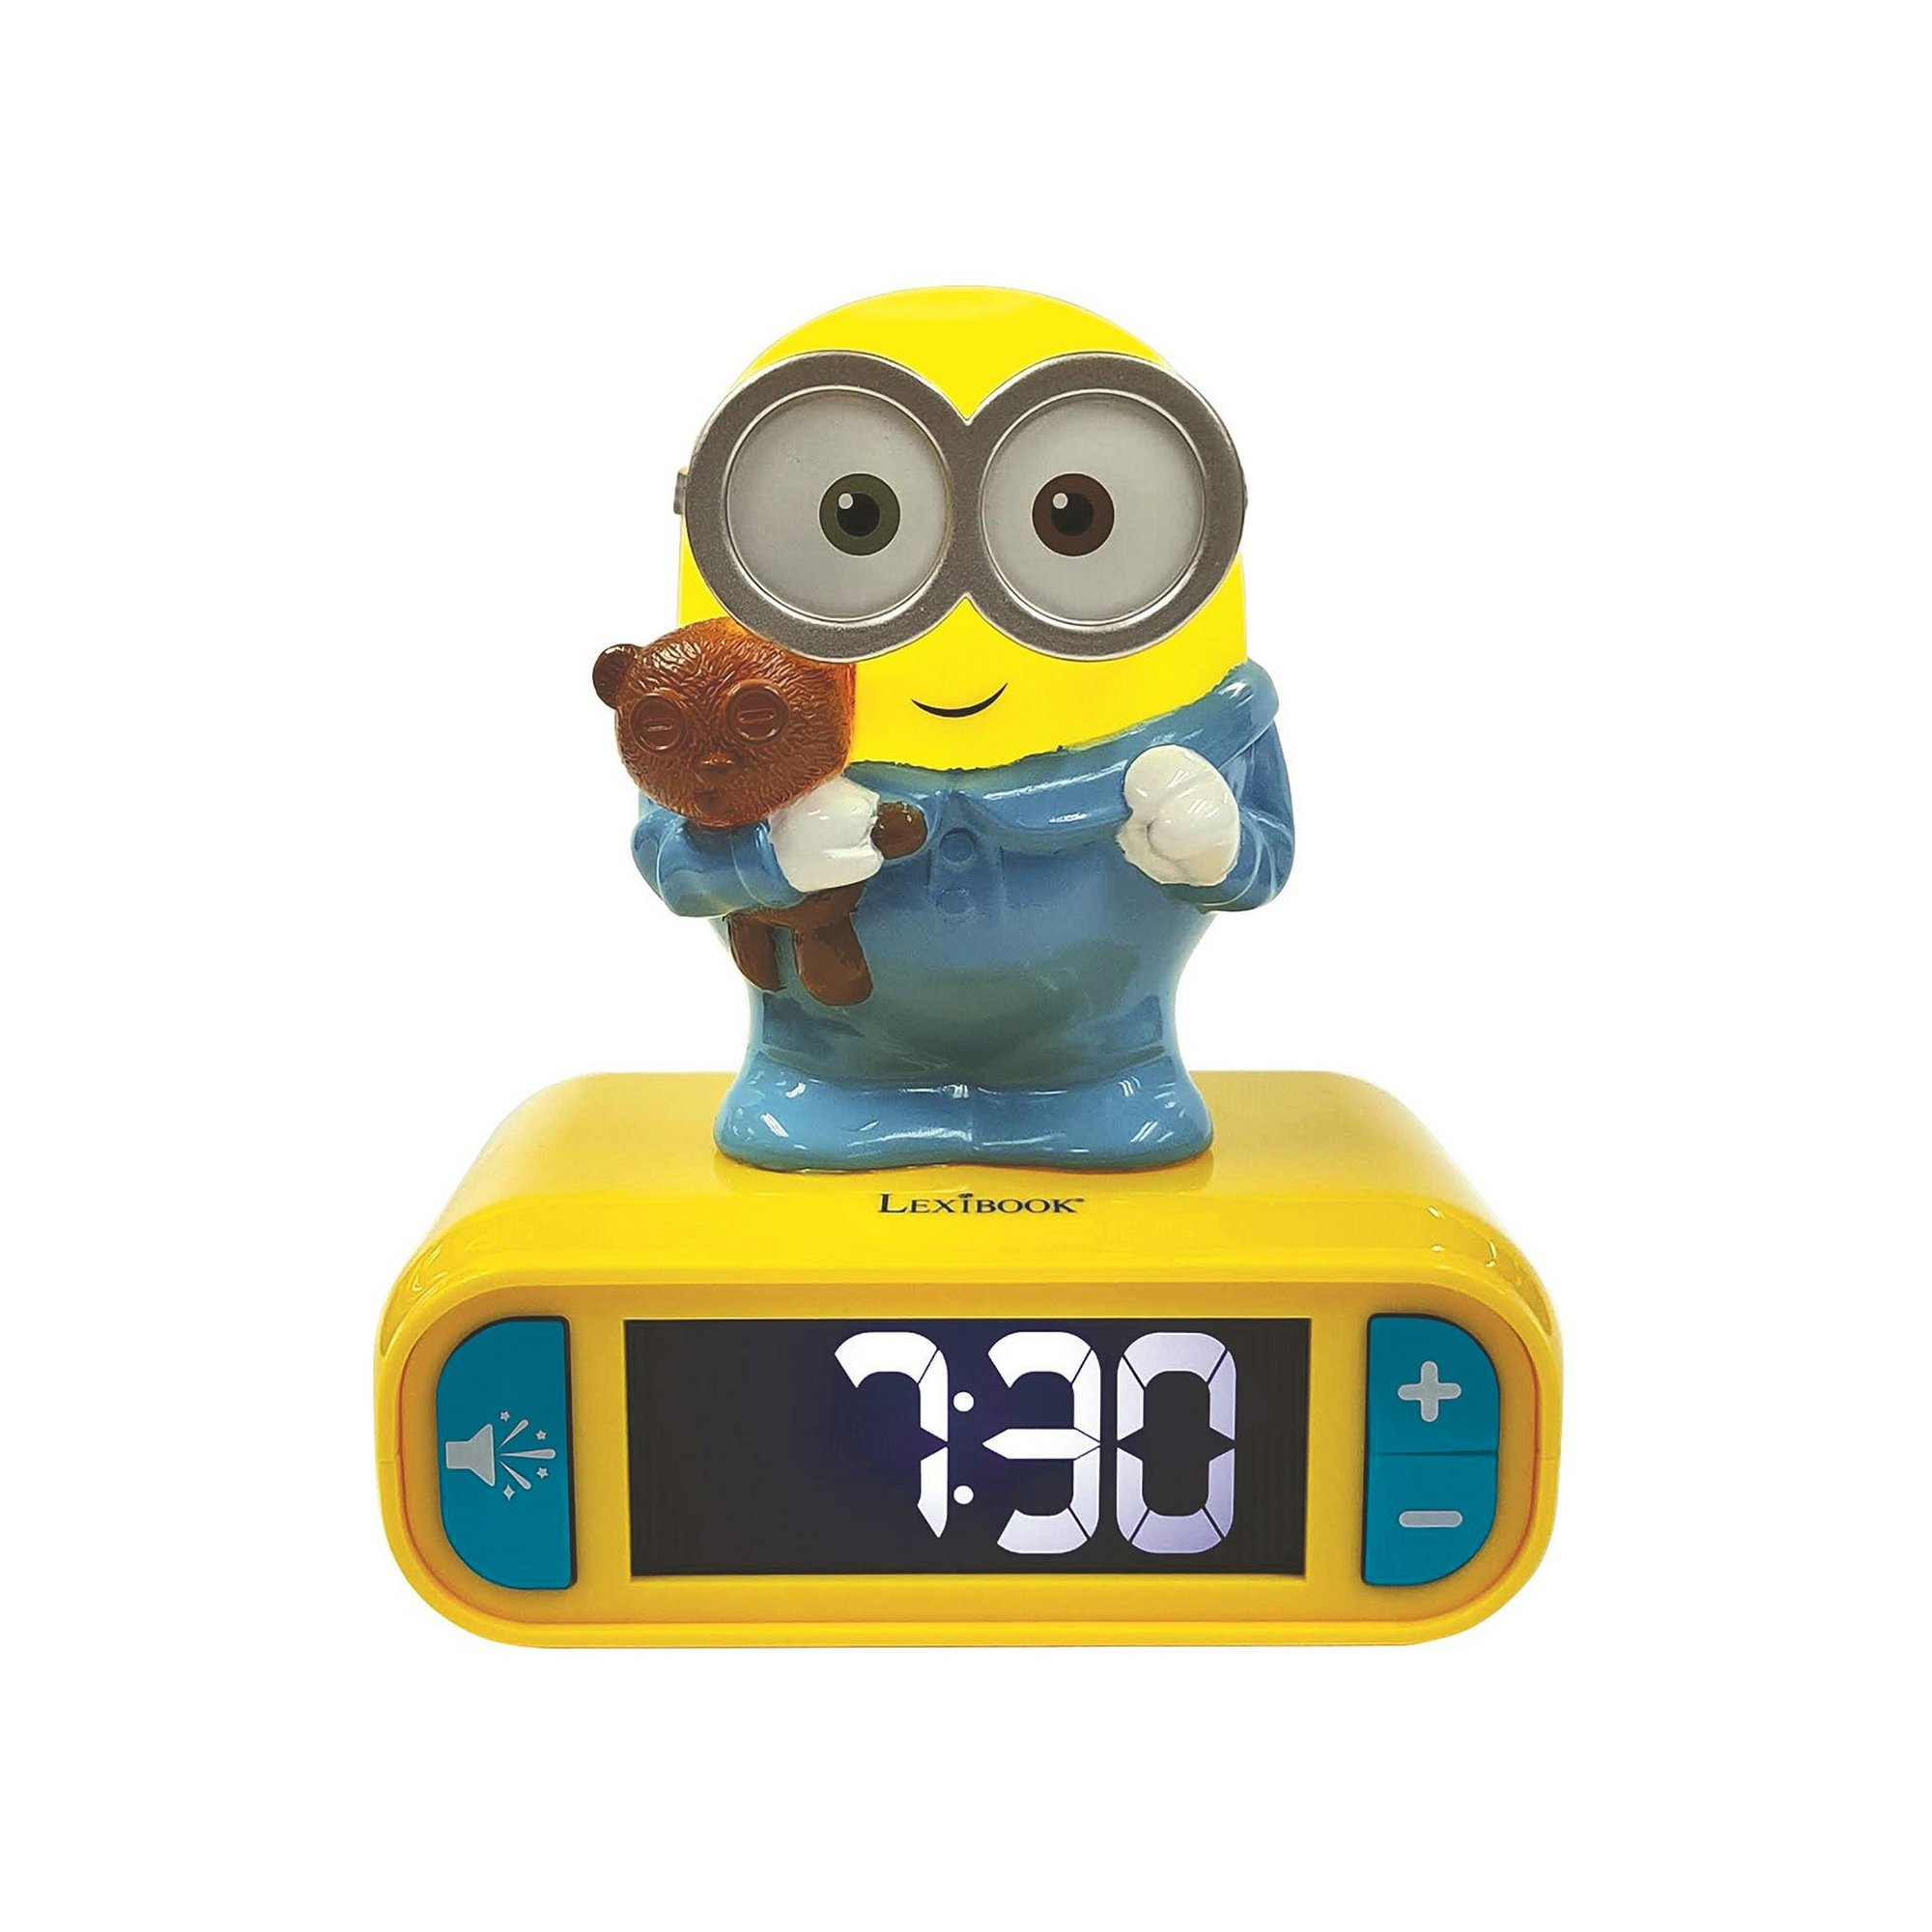 Image of Lexibook Despicable Me Minions Childrens Clock with Night Light